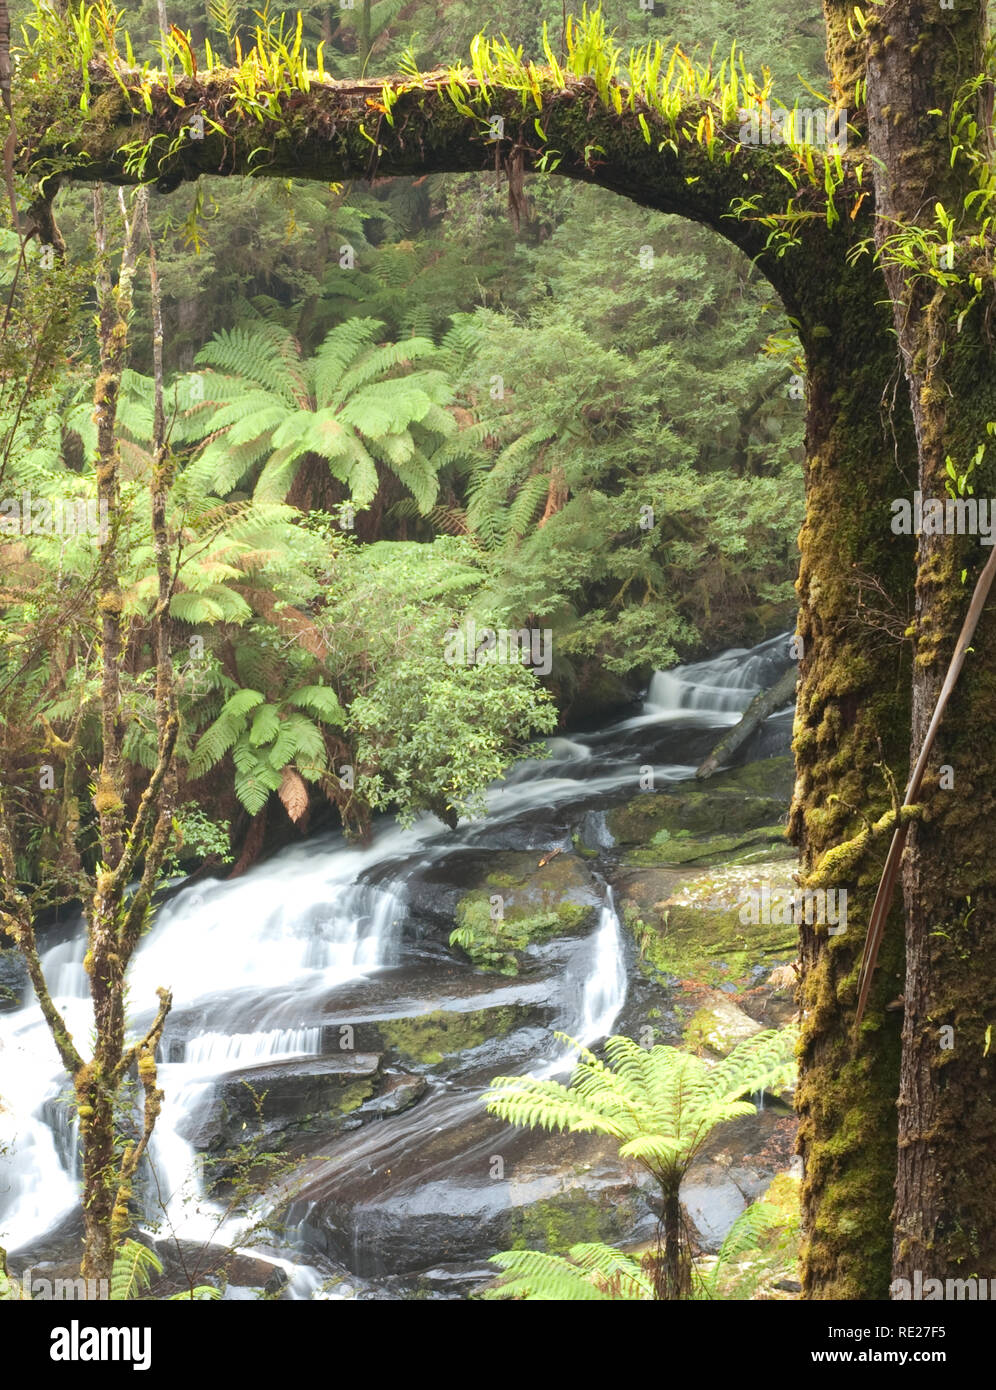 Triplet Falls in the Great Otway National Park, Victoria, Australia - Stock Image